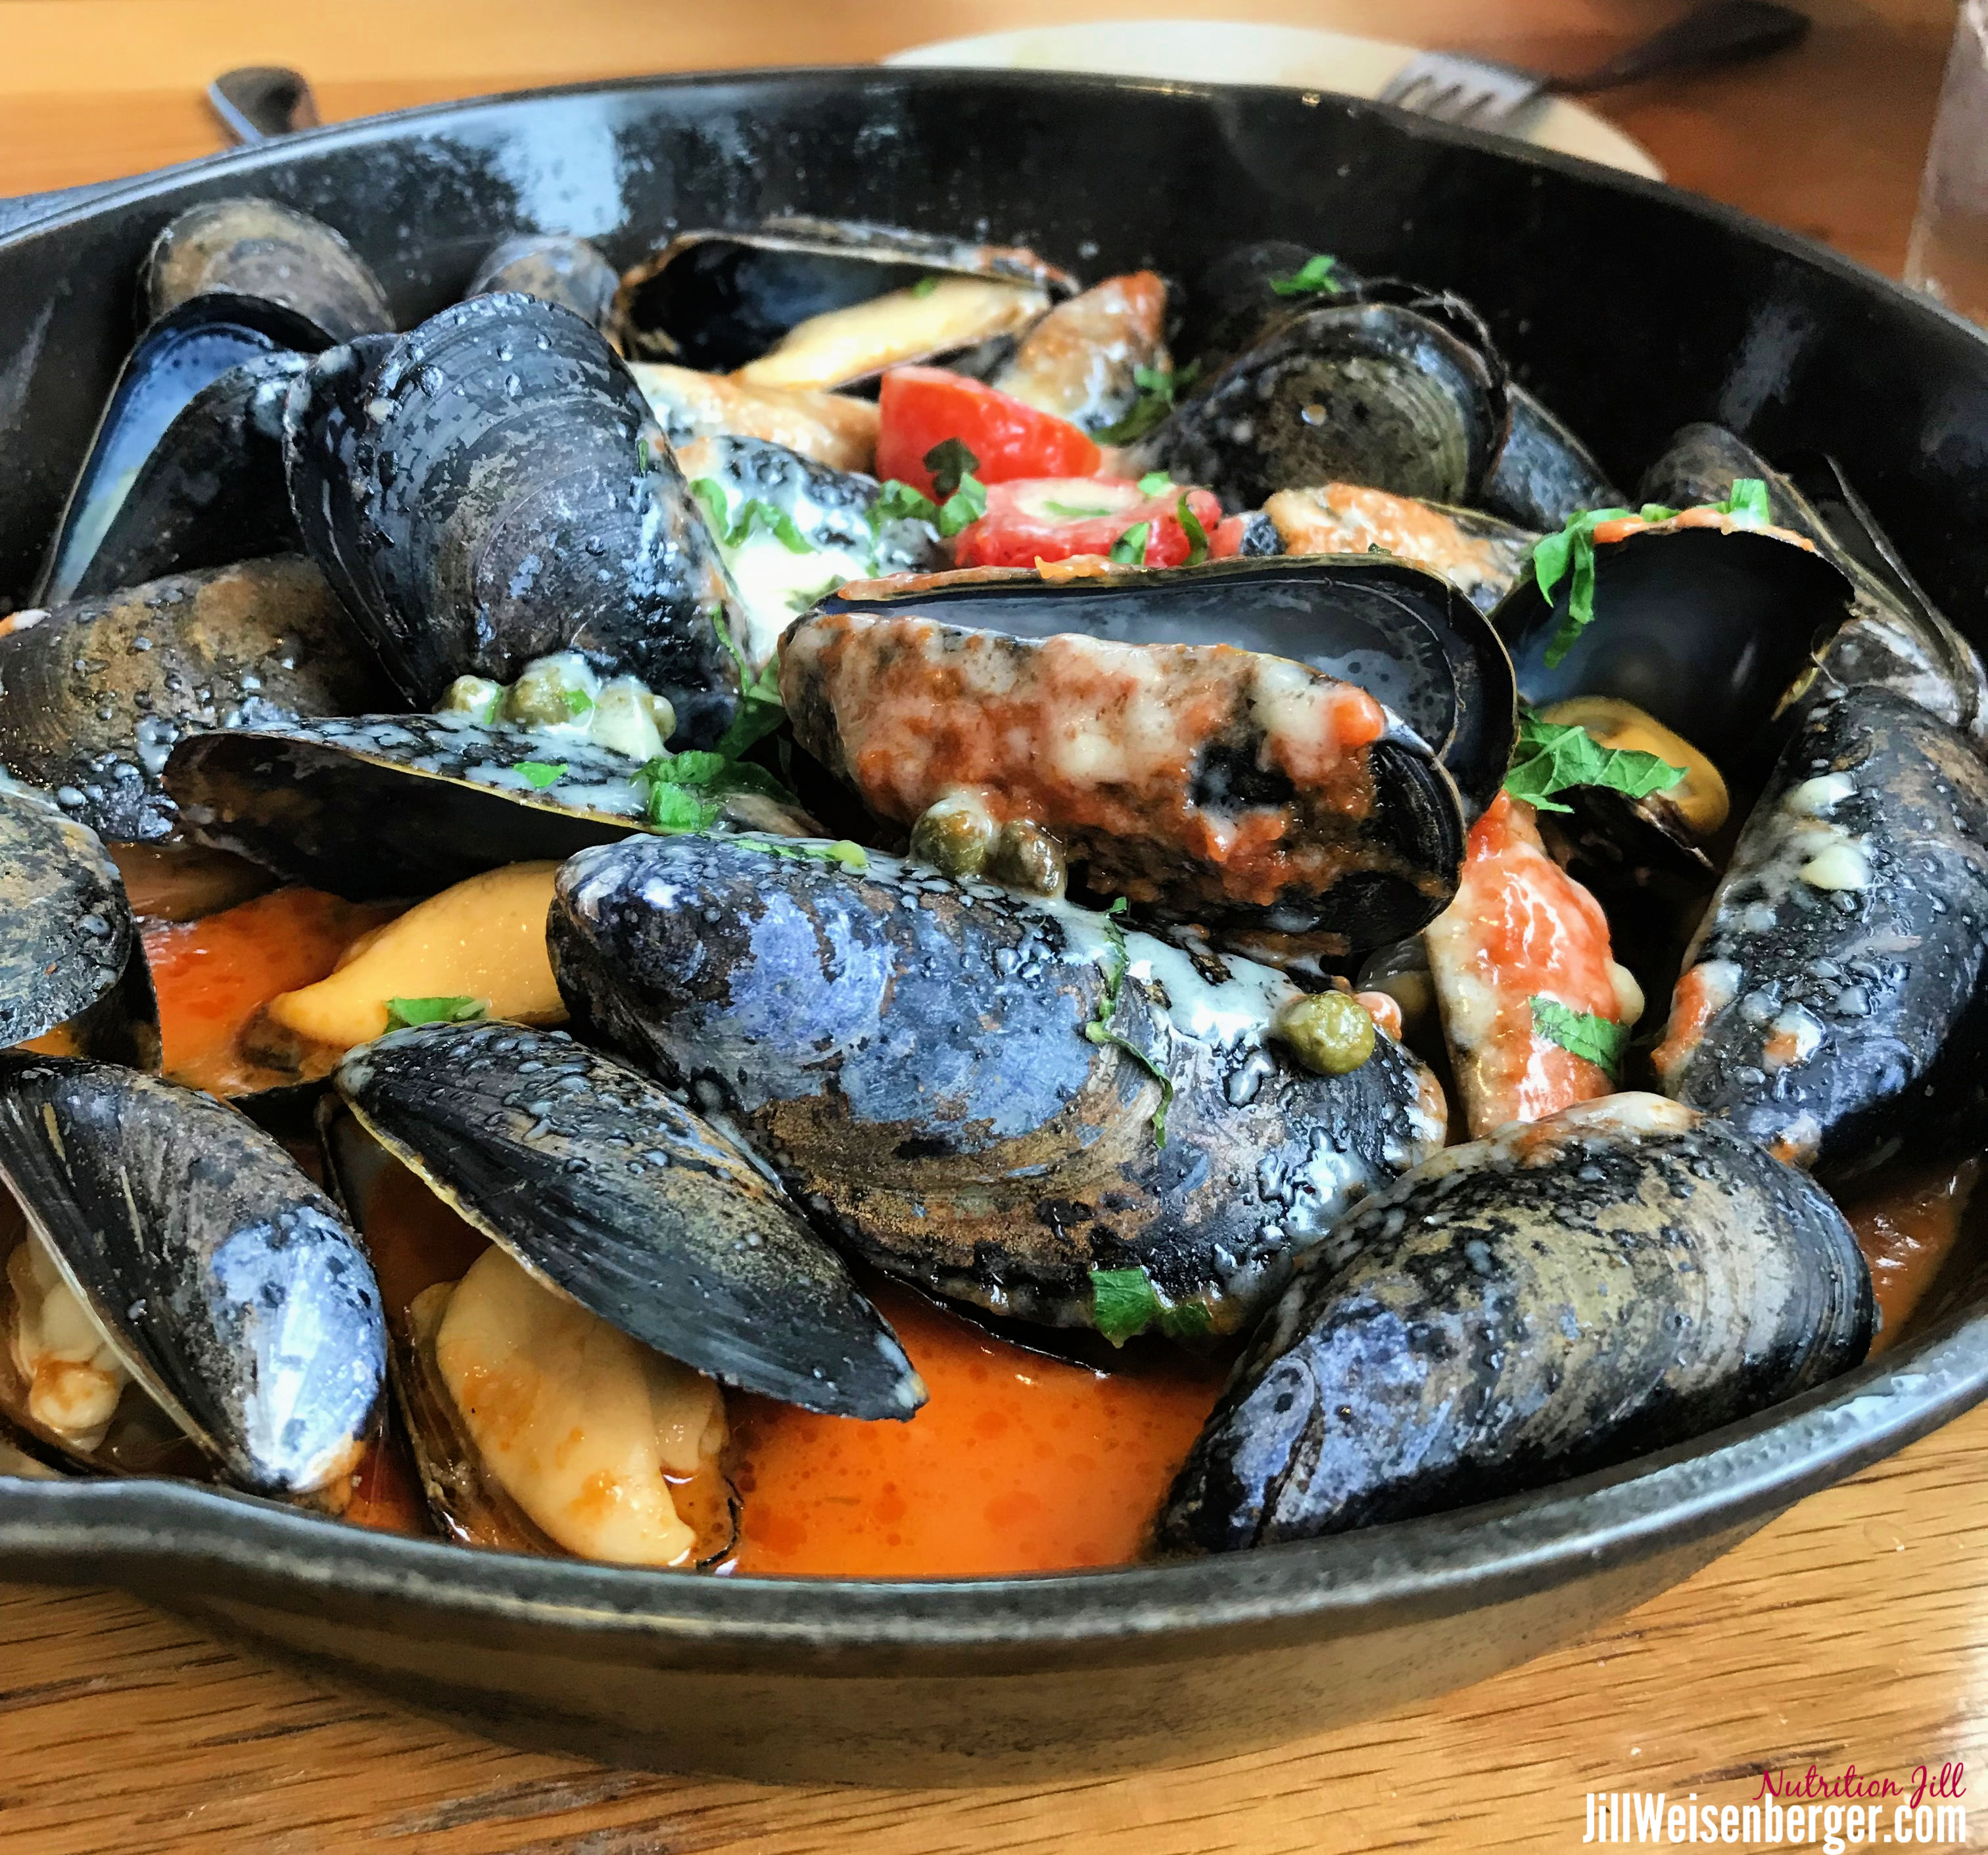 eating out healthy with mussels